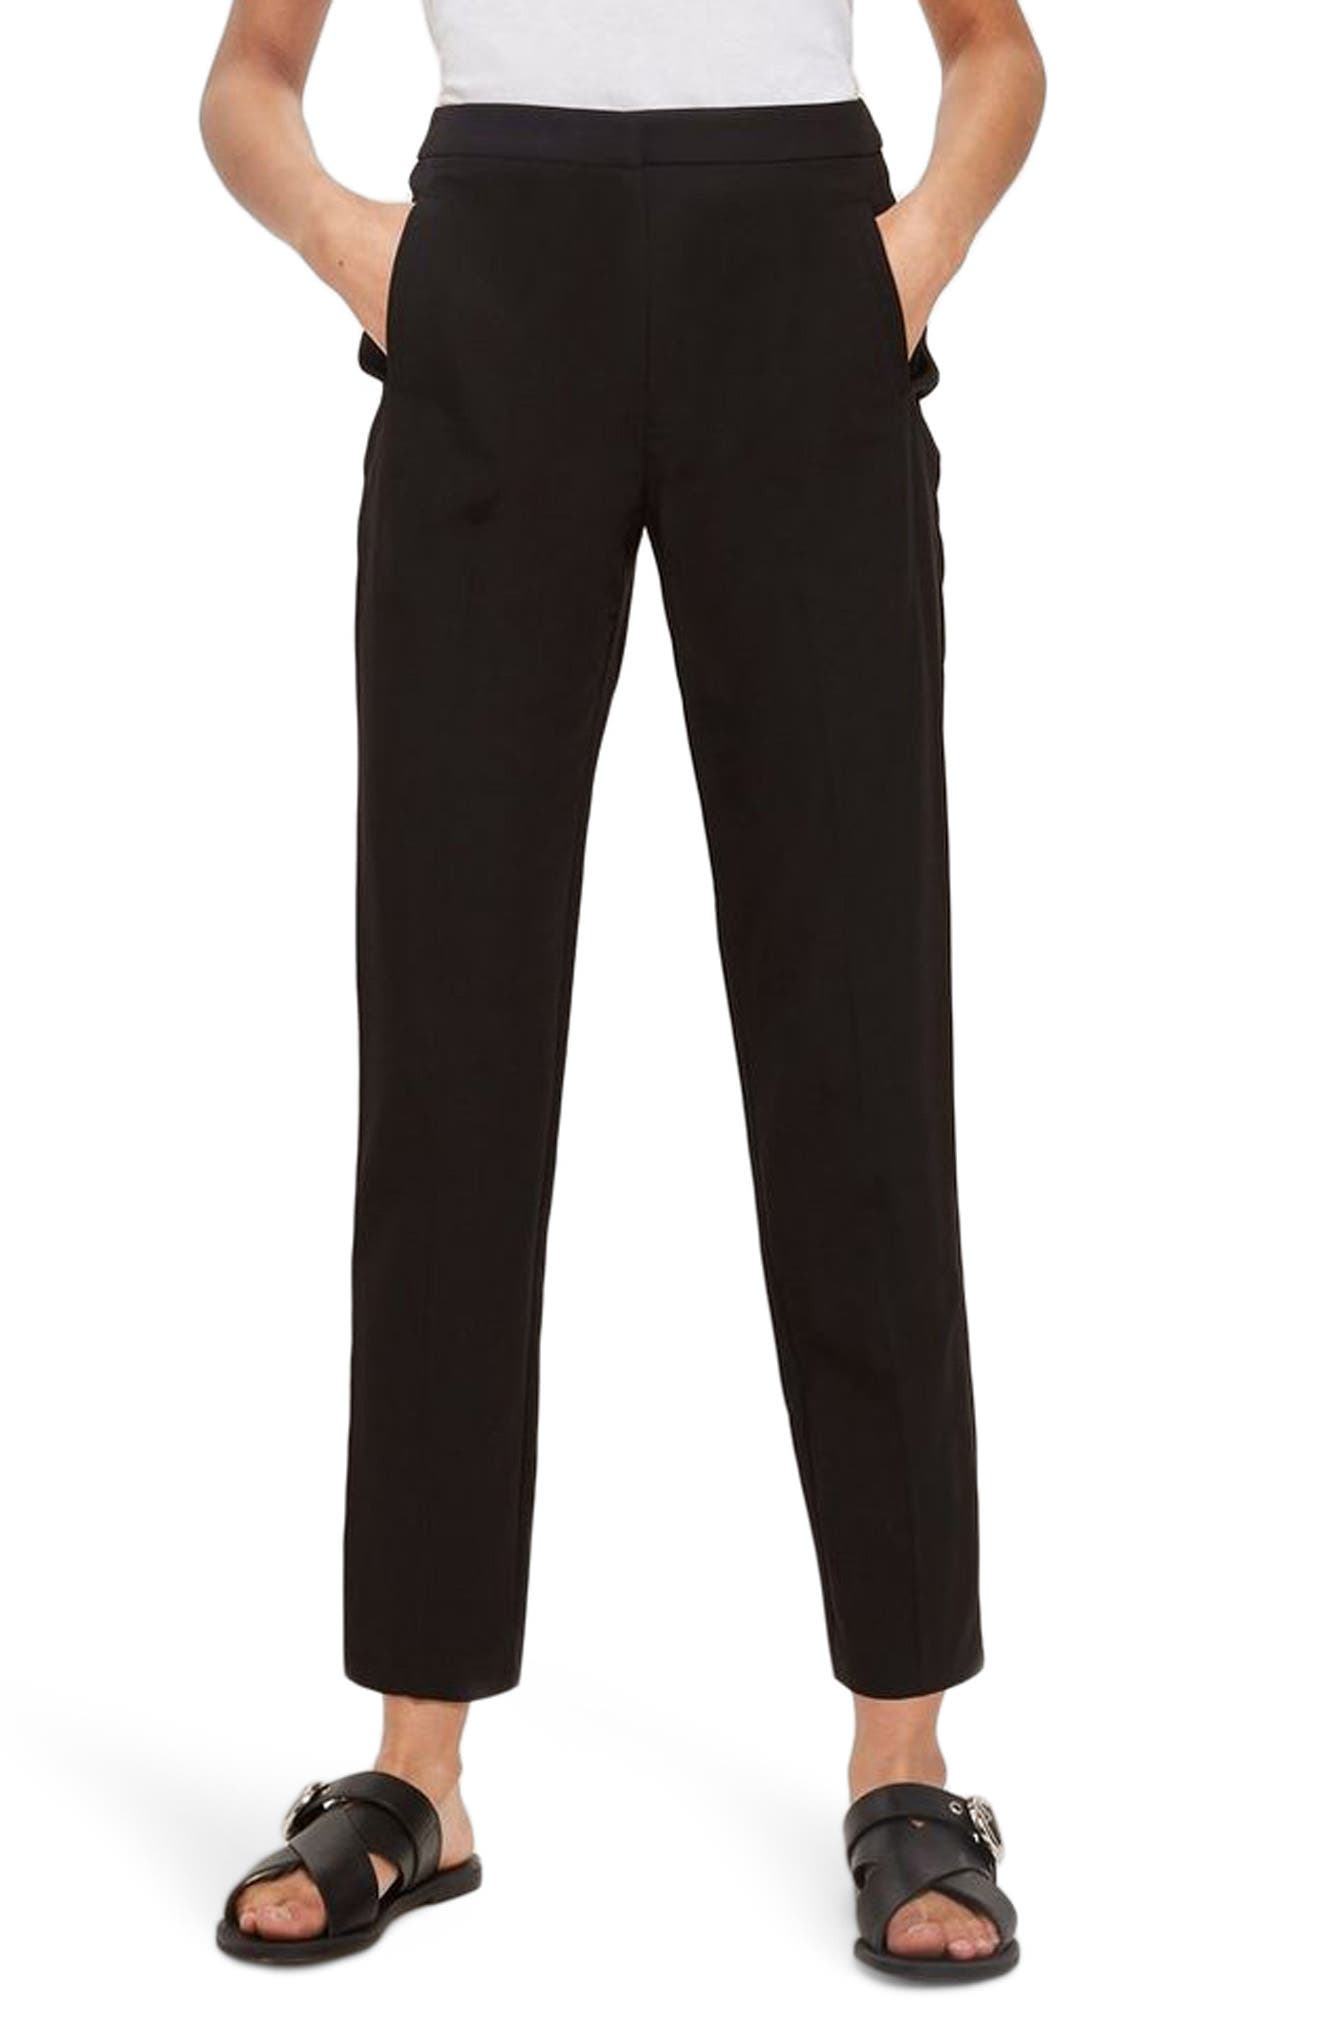 High Waist Cigarette Trousers,                             Main thumbnail 1, color,                             Black